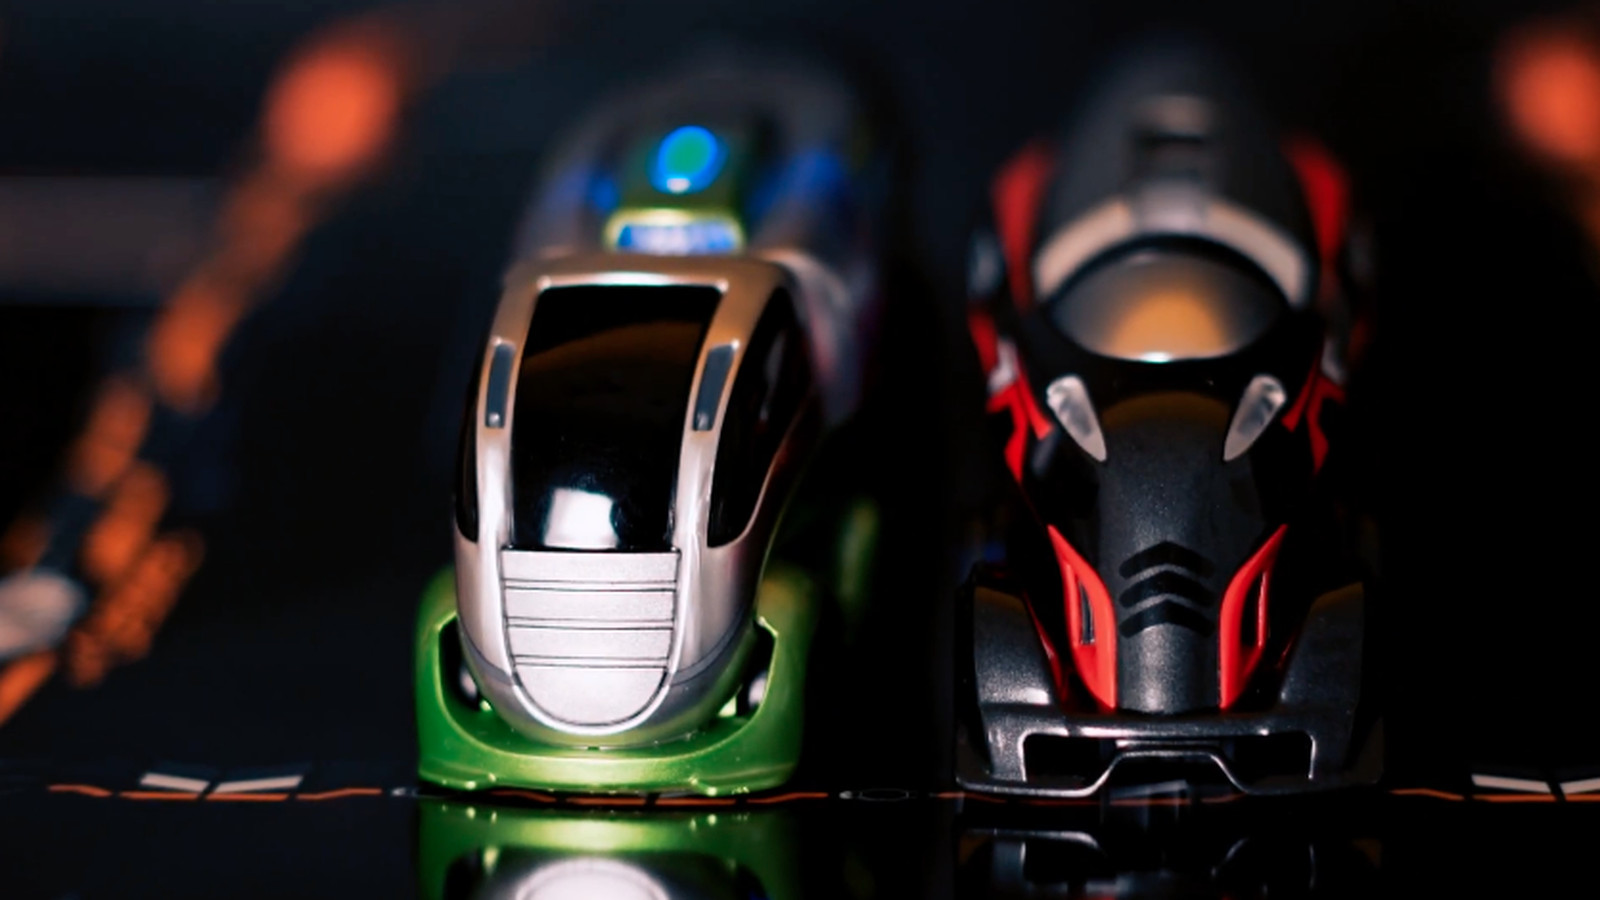 Anki Is Bringing Giant Robot Trucks To Its Toy Racing Game